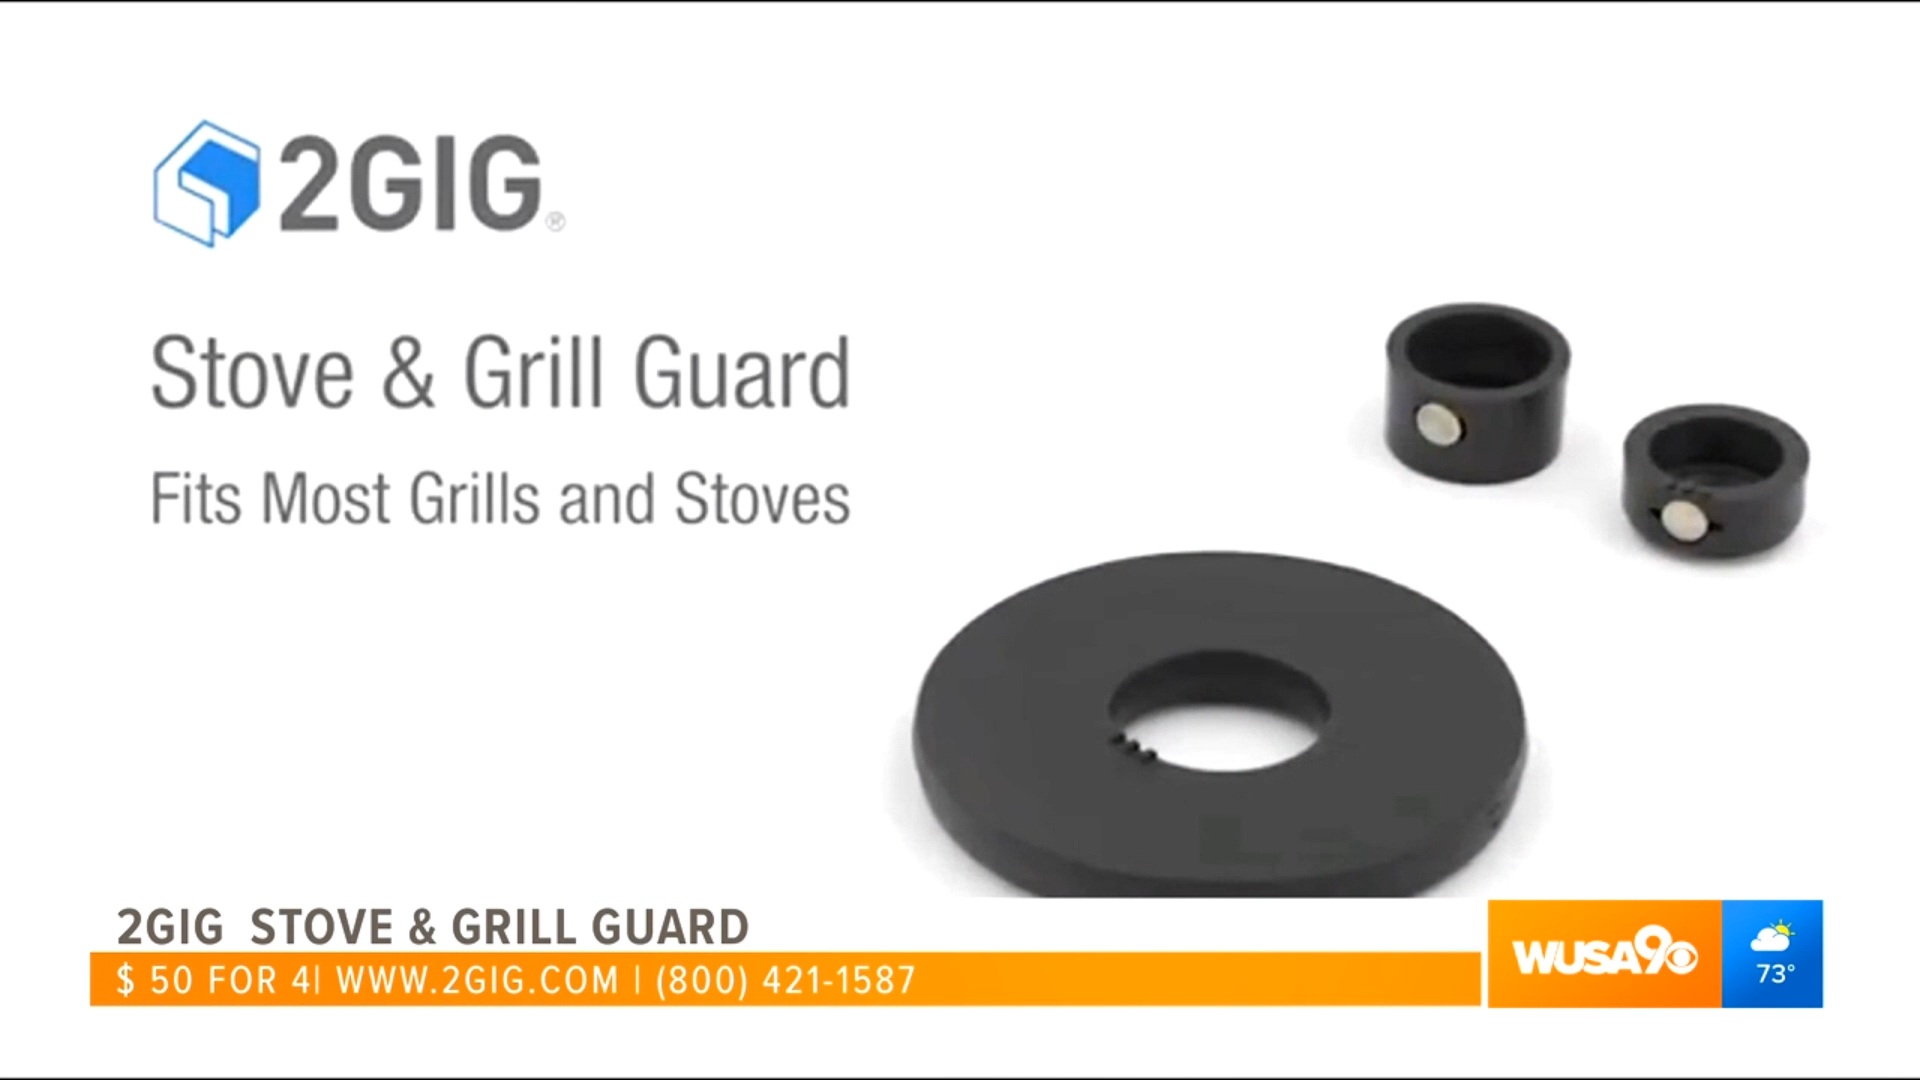 2GIG STOVE & GRILL GUARD - $50.00 or 4 for $187.00Shop Now